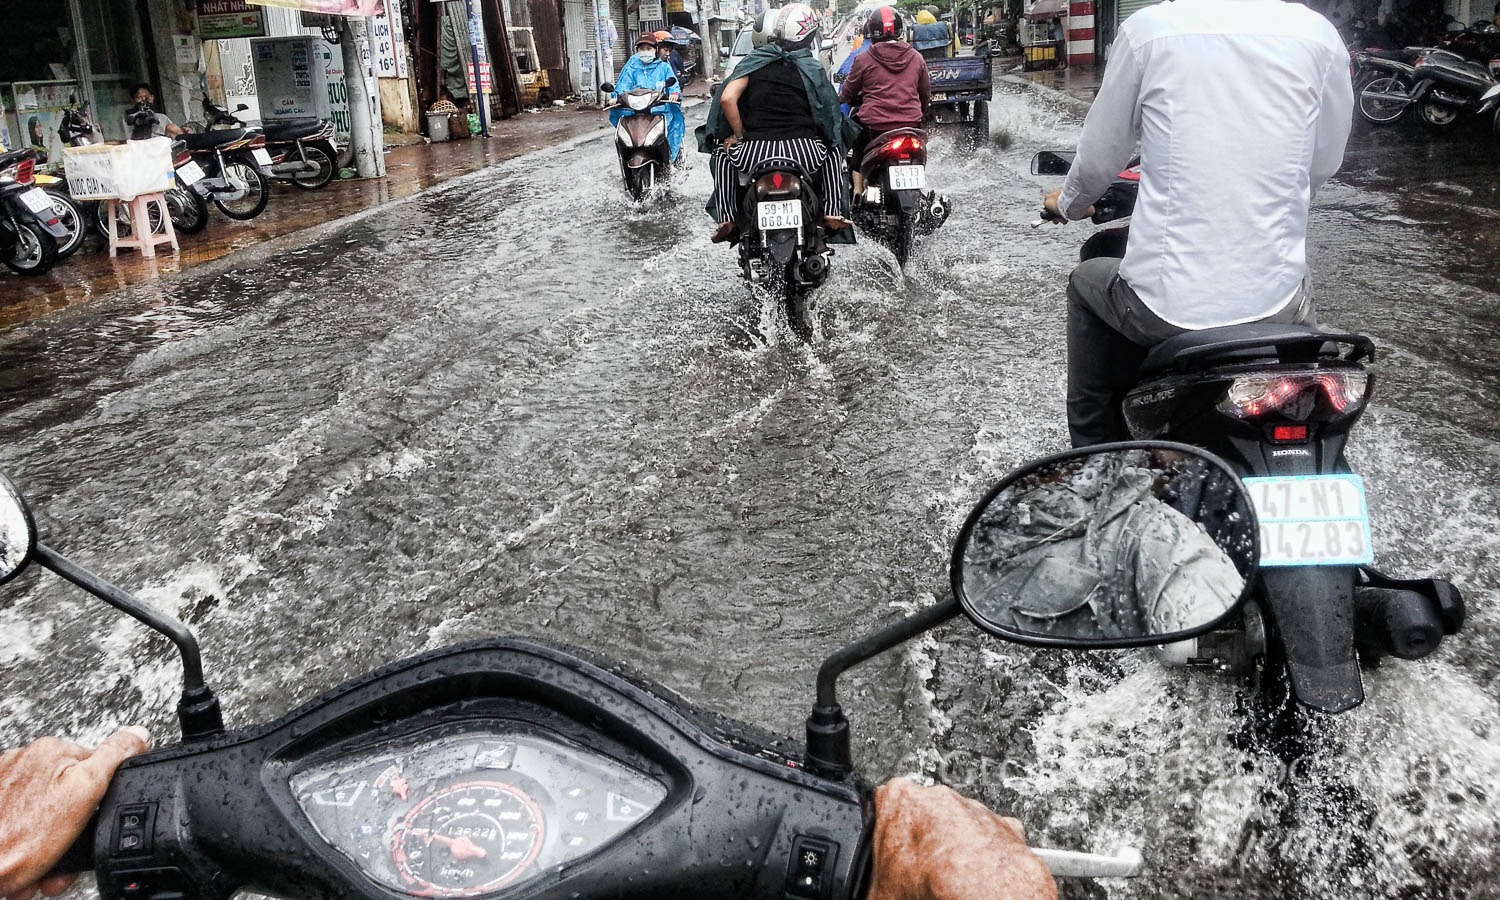 tour, phone, motorbike, saigon, rain